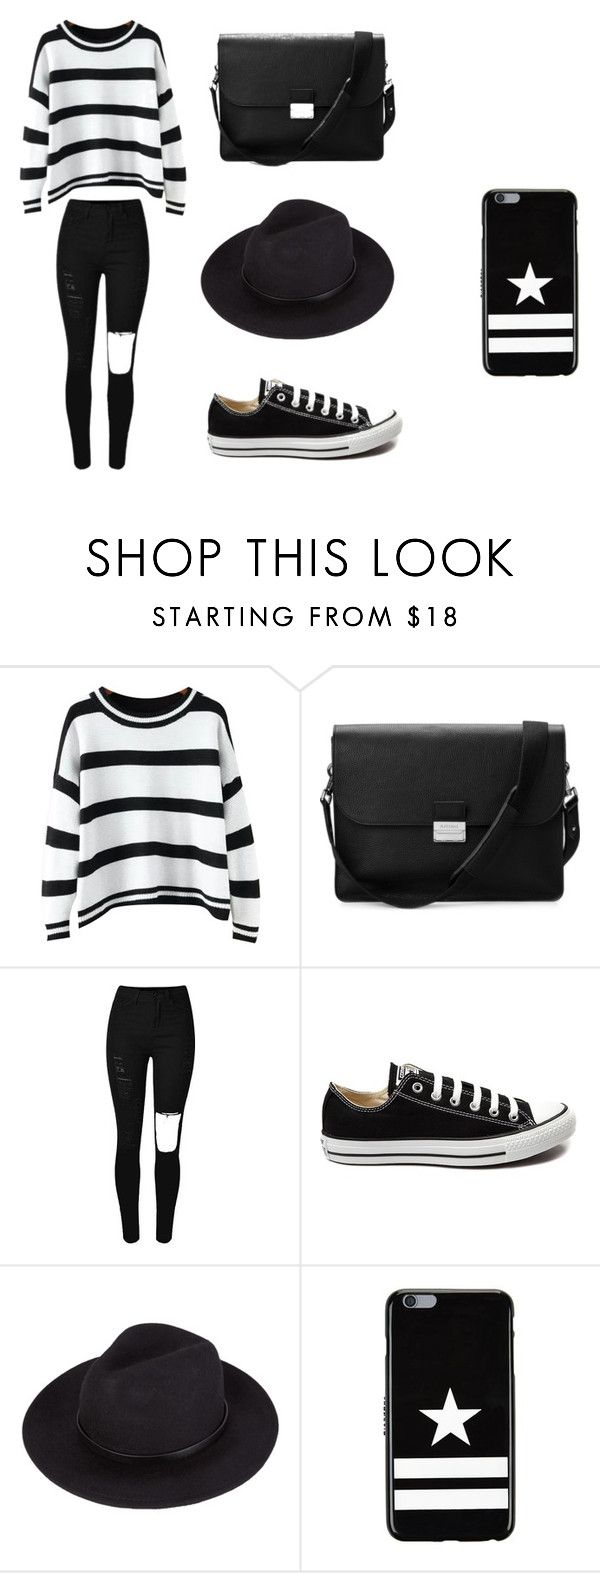 """Untitled #97"" by karenrodriguez-iv on Polyvore featuring Chicnova Fashion, Aspinal of London, Converse, Givenchy, women's clothing, women, female, woman, misses and juniors"